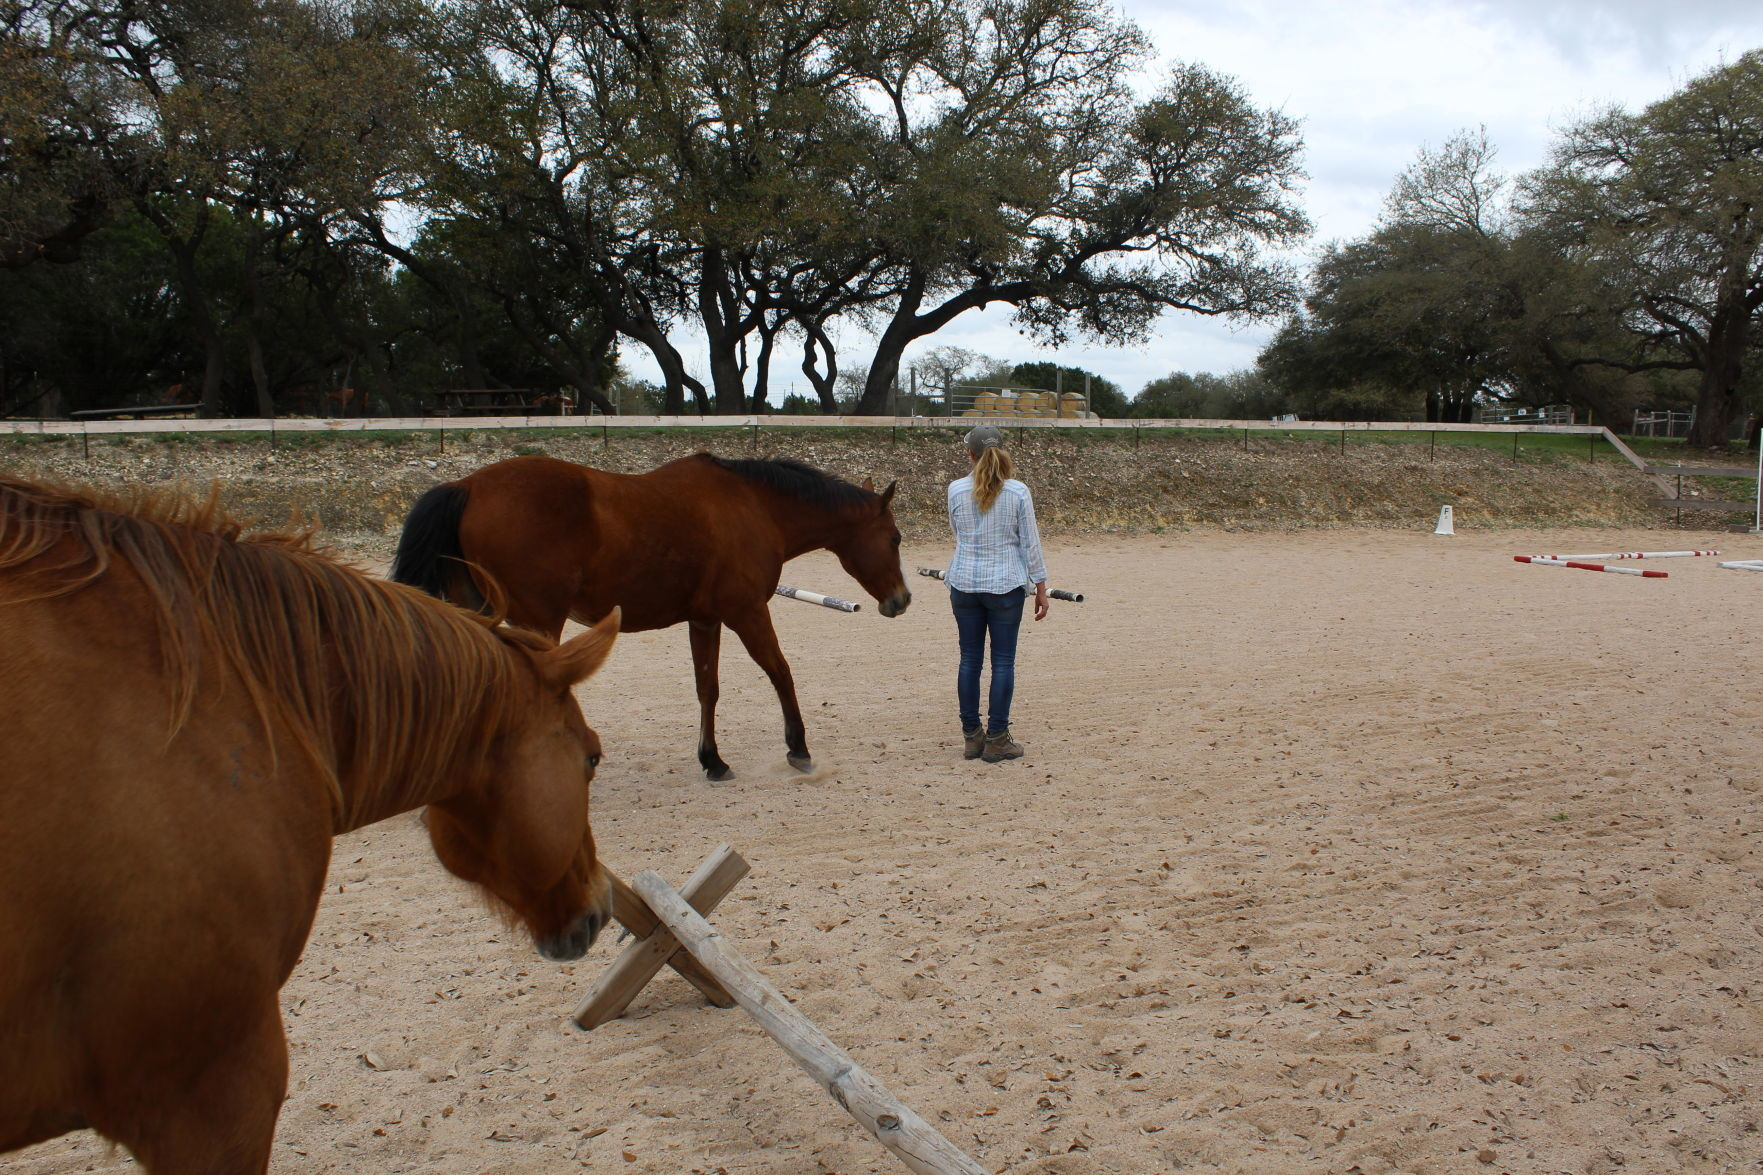 Kelly Jones, owner of South Wind Equestrian Center, shows how she uses nonverbal communication to lead horses.